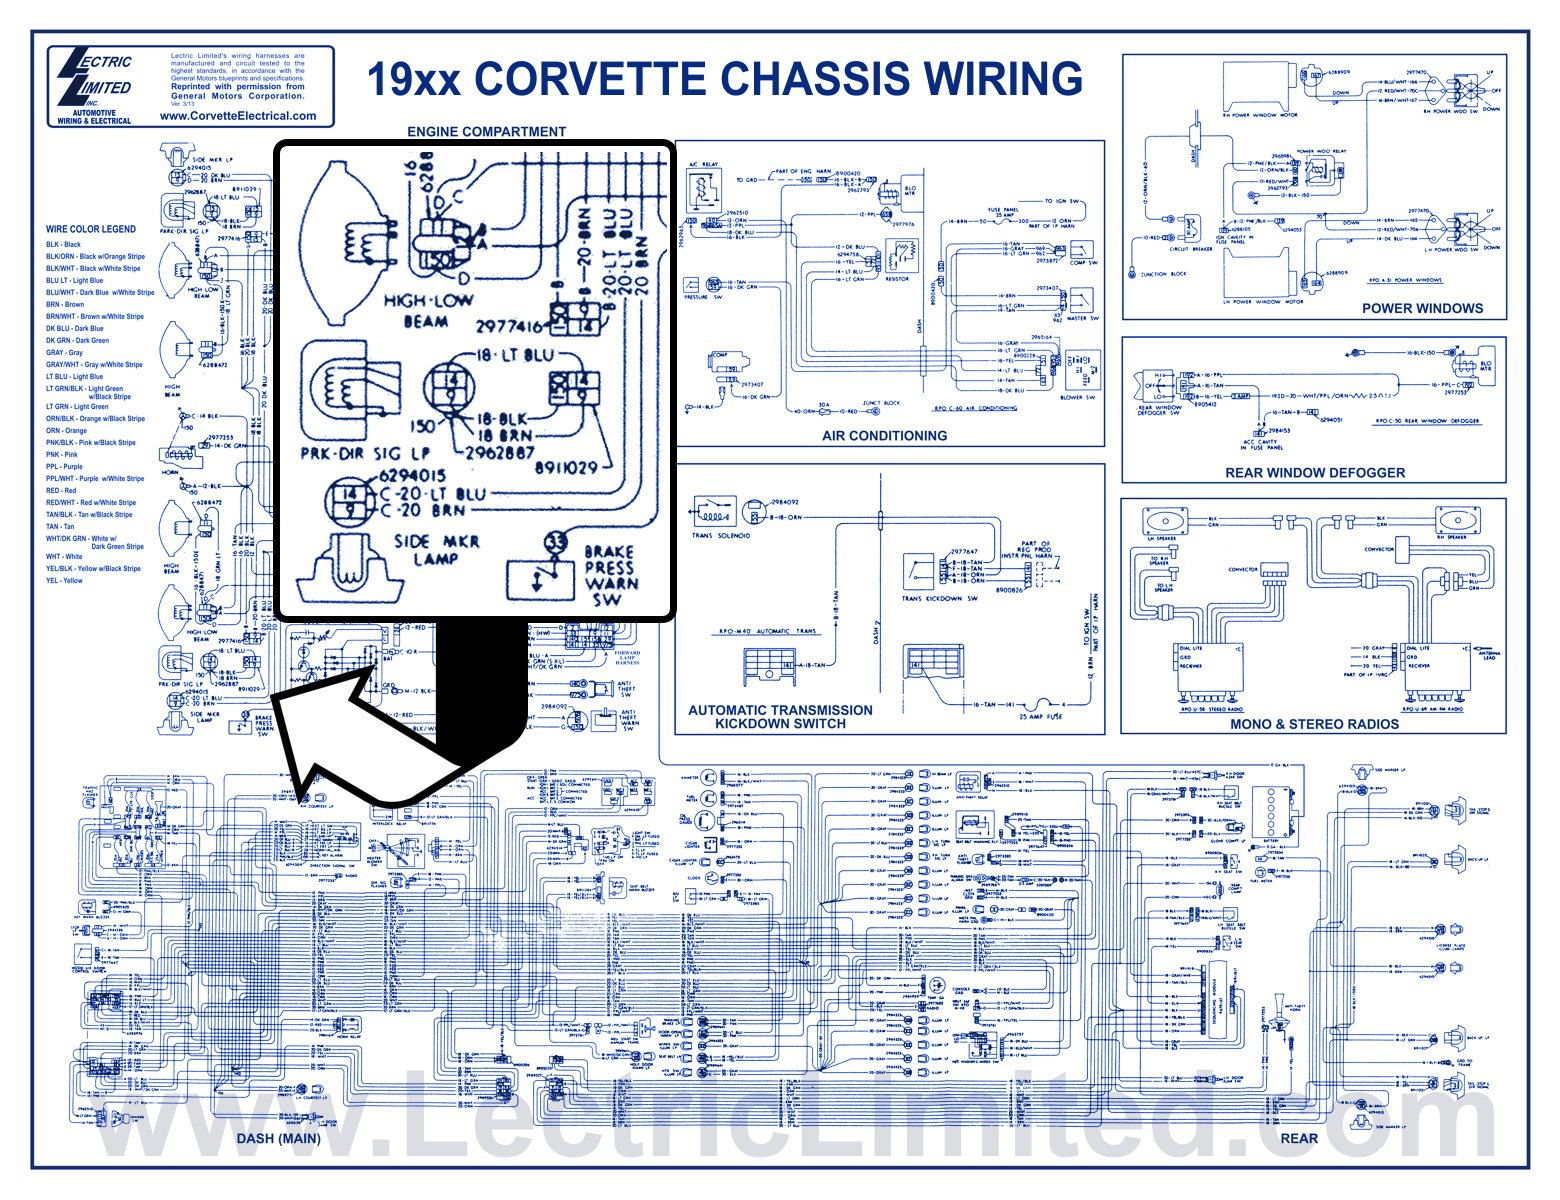 wiring_diagram miscellaneous products 1970 Corvette Wiring Diagram at eliteediting.co